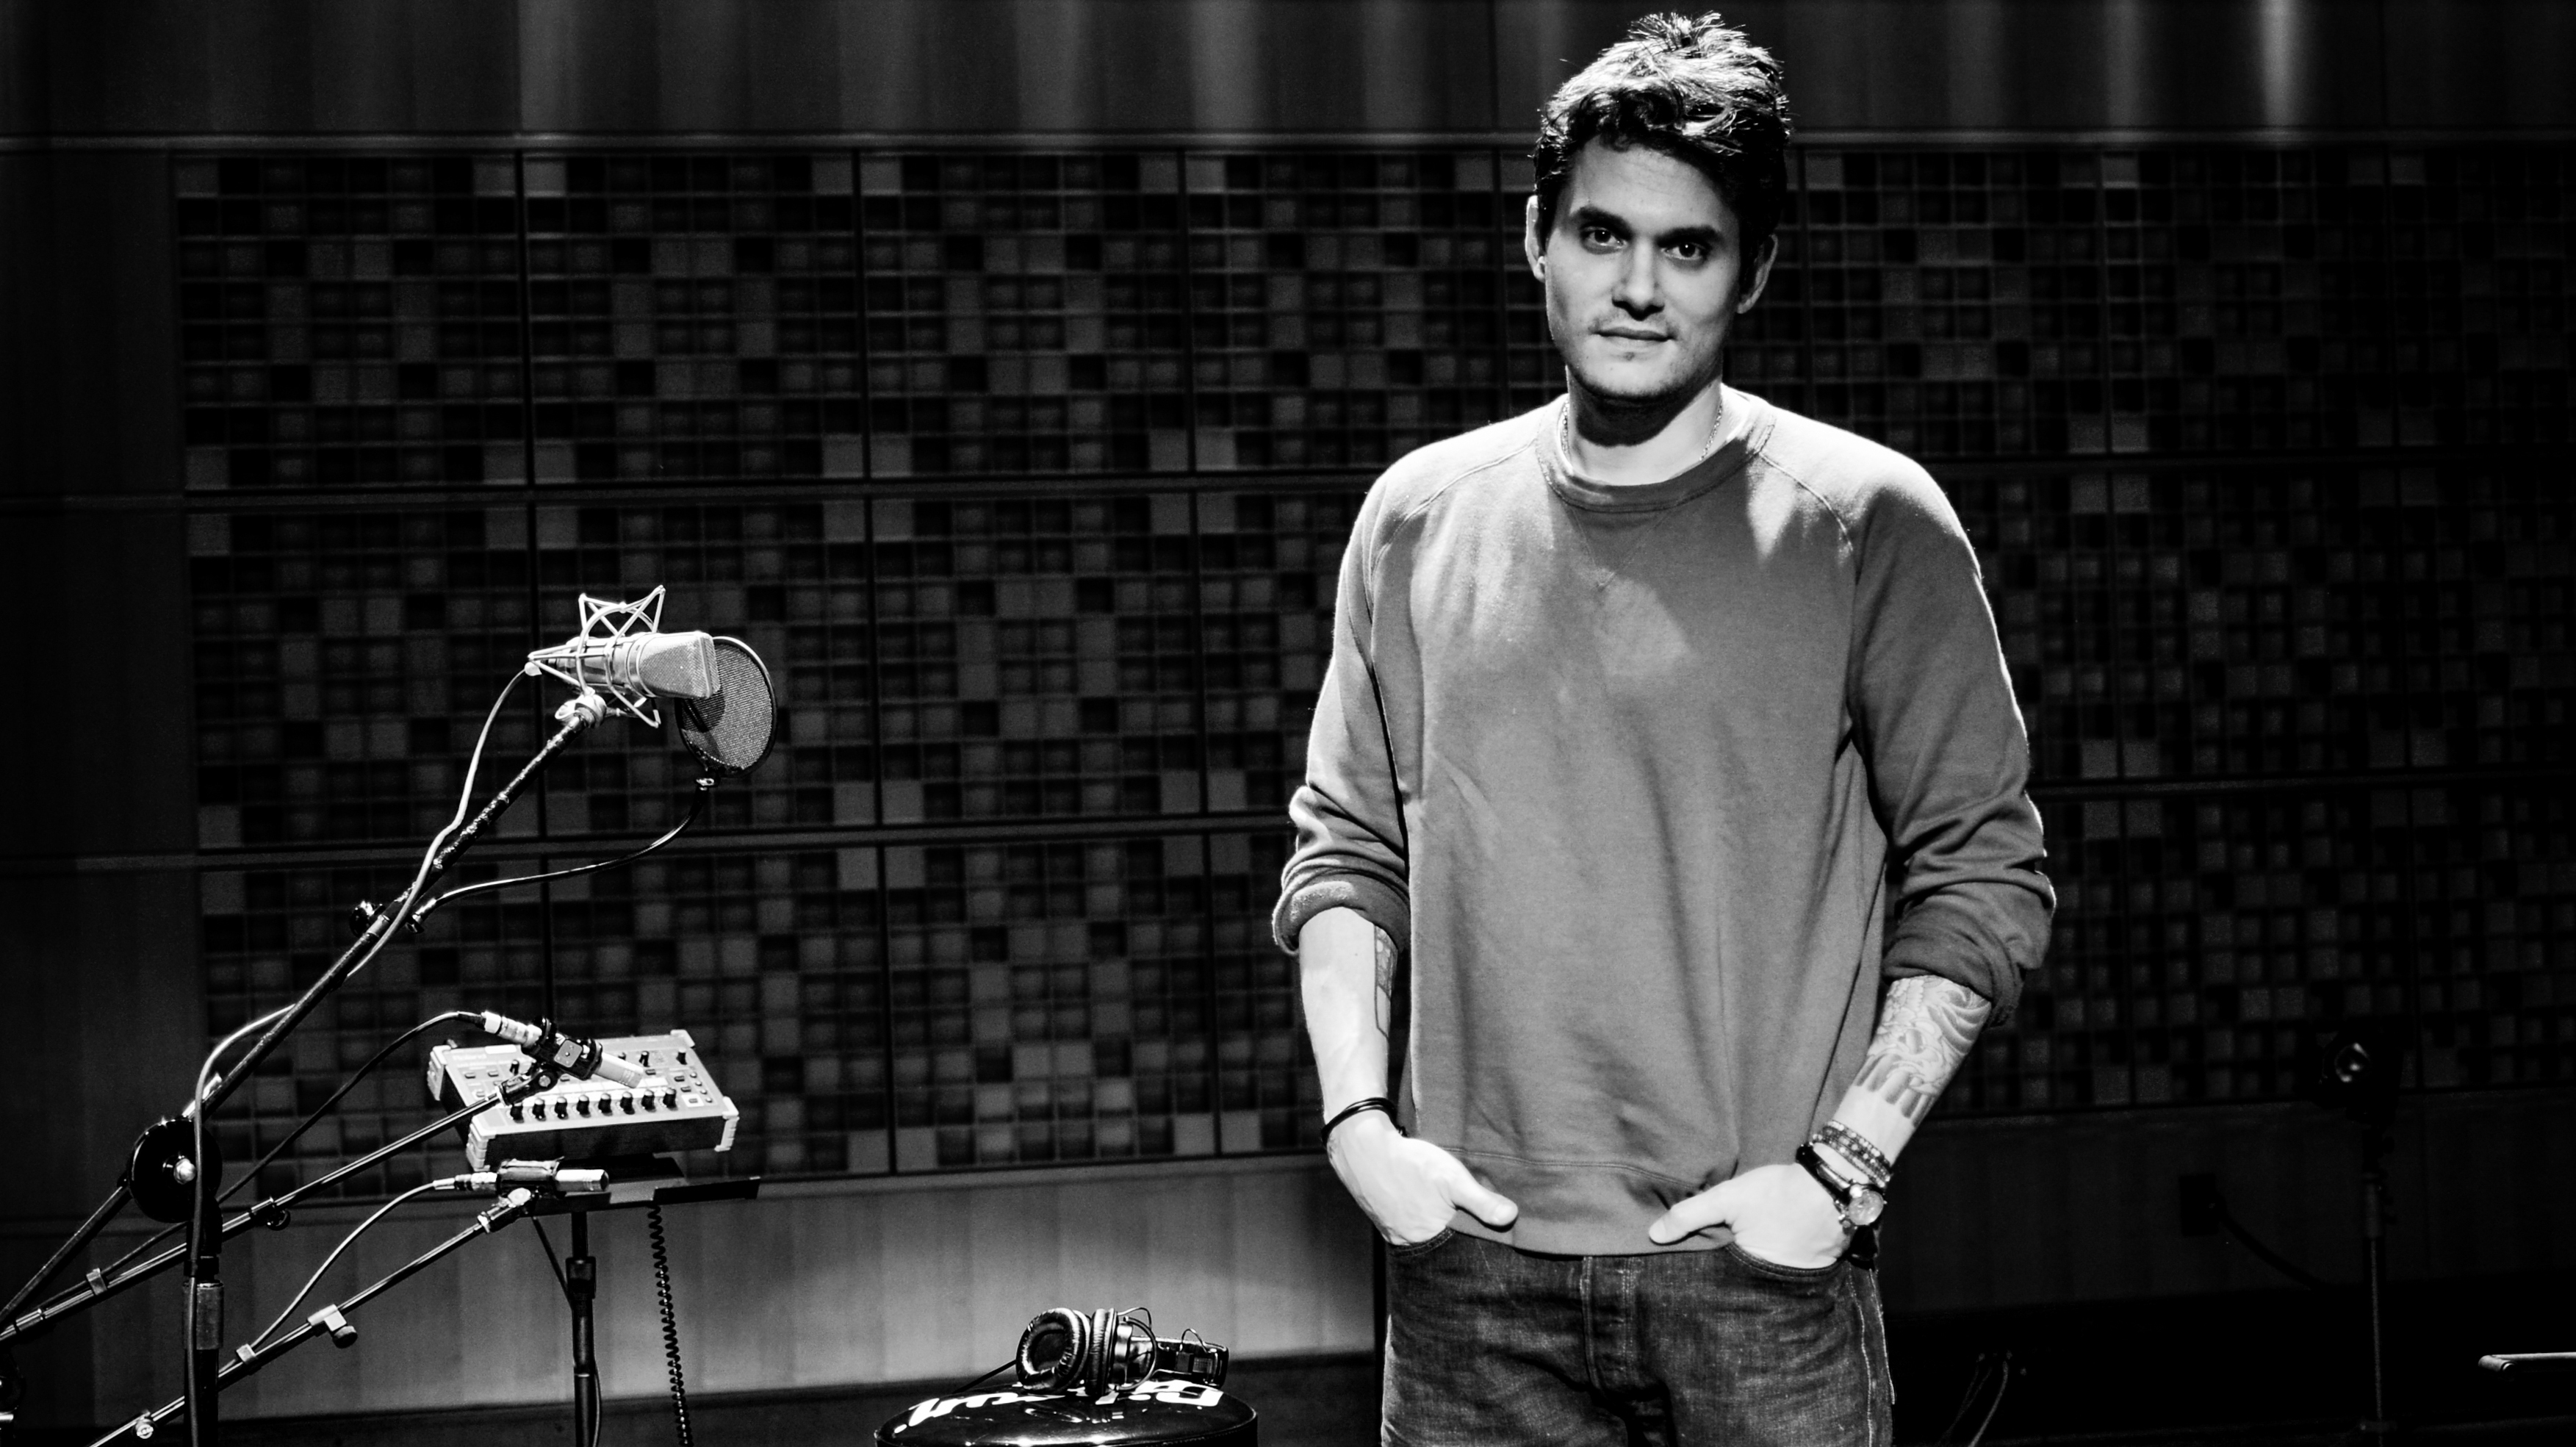 'It's Hard To Stay Patient': A Conversation With John Mayer